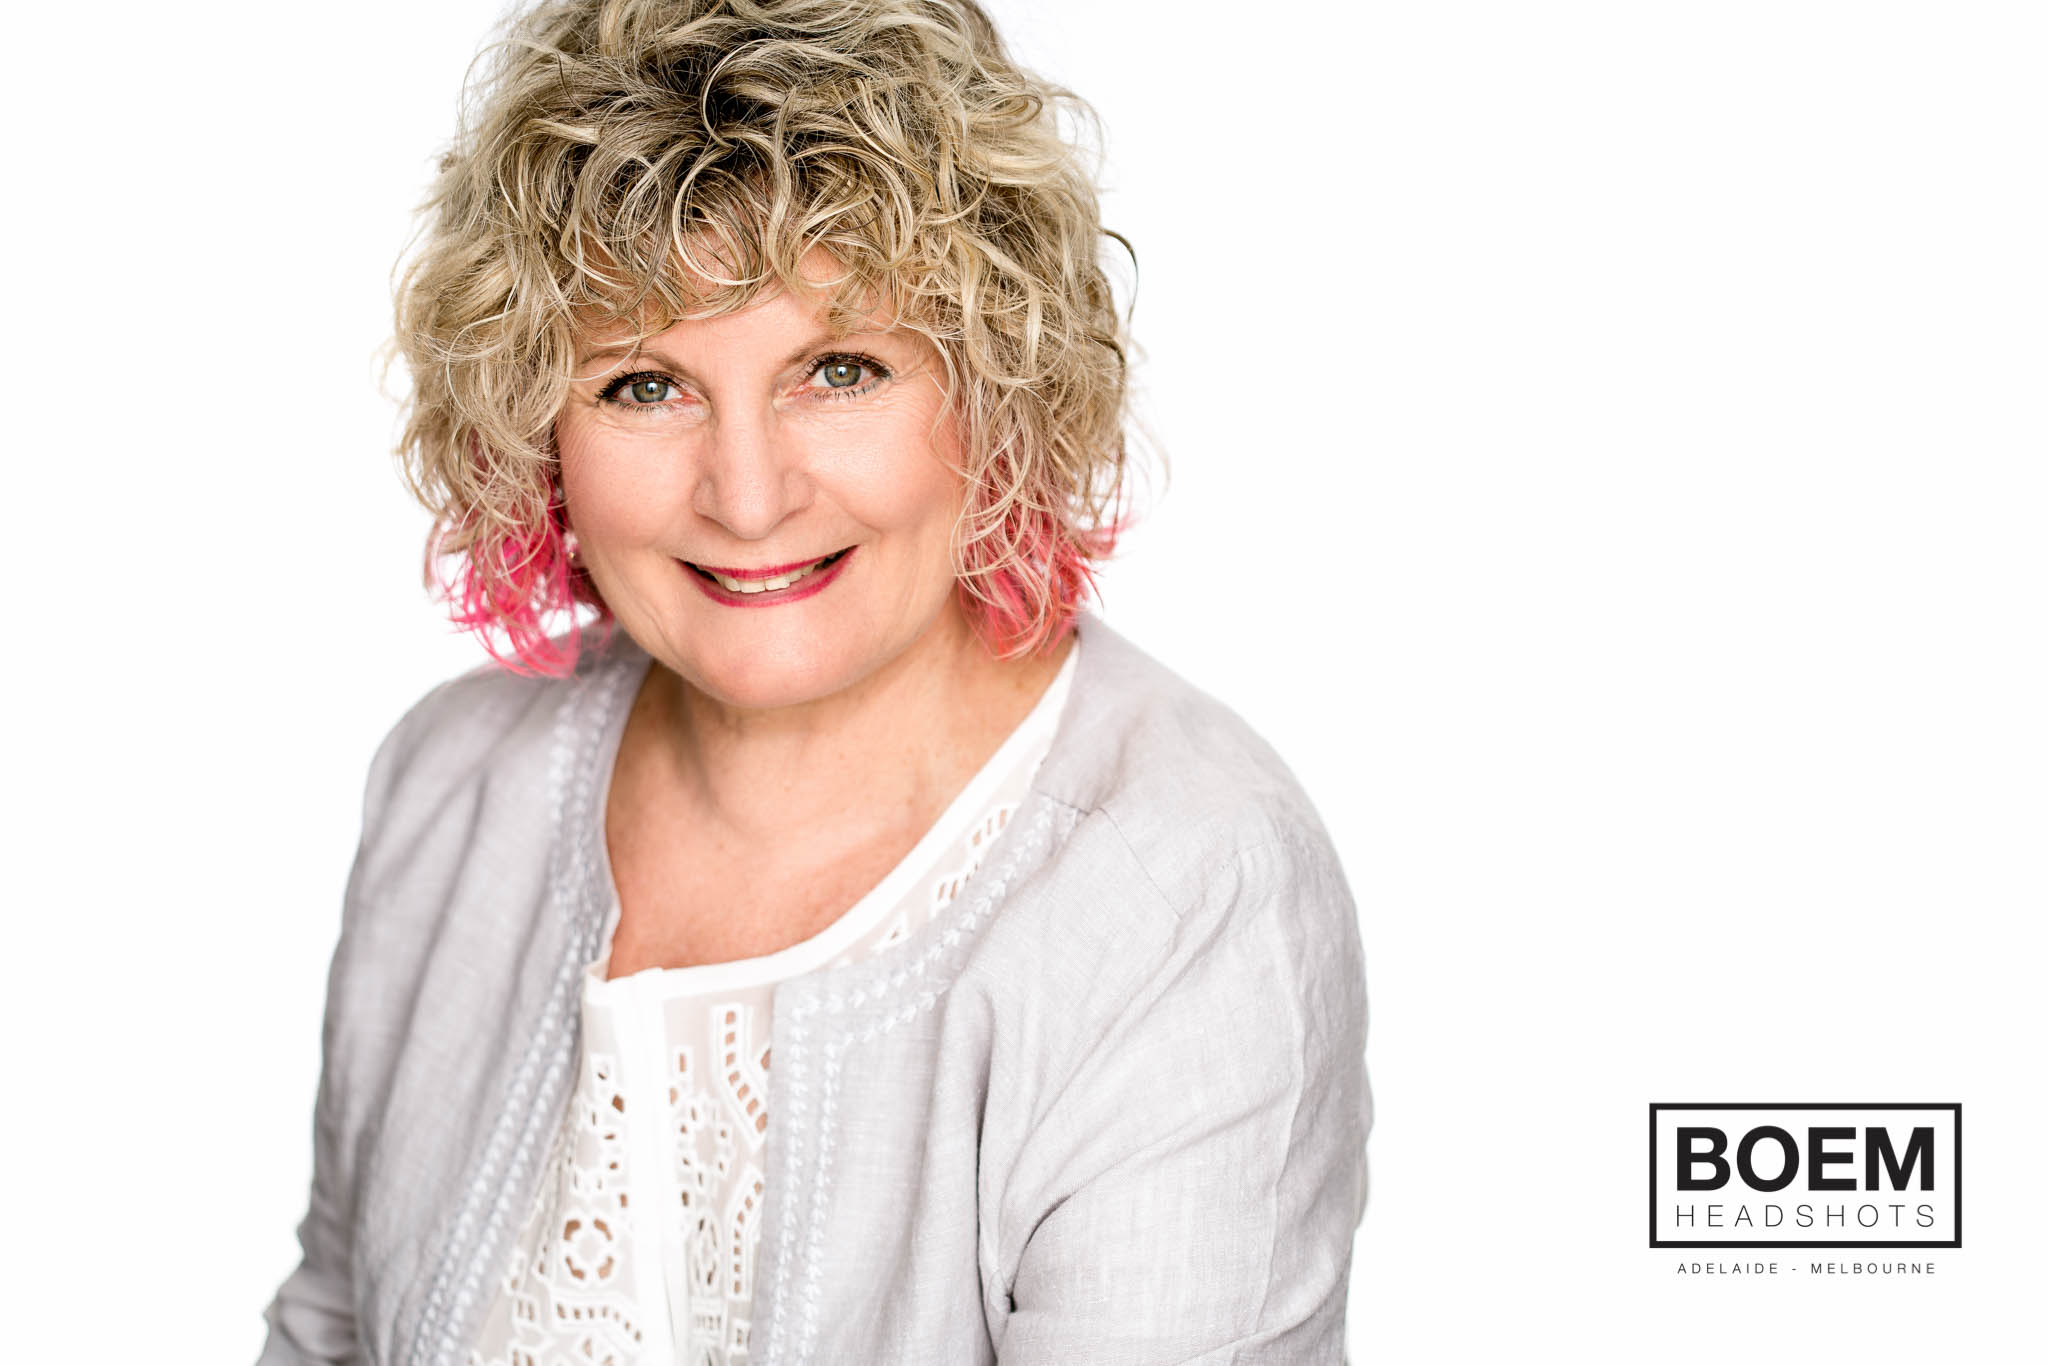 Shamarie was in the studio today for a set of new headshots for her blog, website and email signatures. We had a total blast working with this incredible woman. More to come!